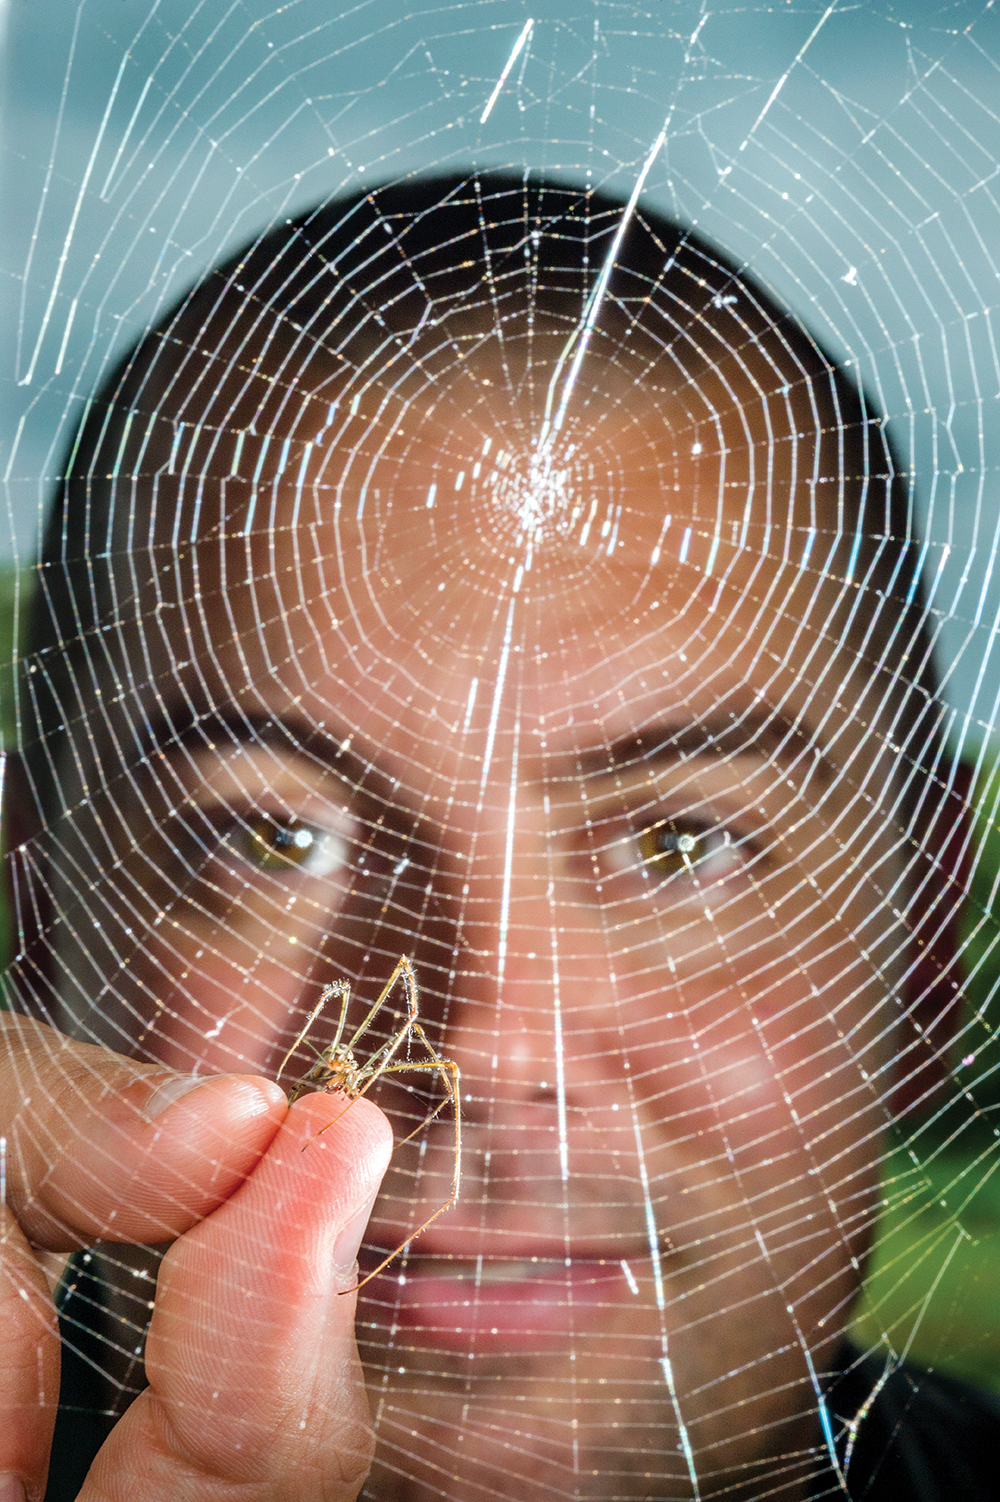 MTSU professor Ryan Otter gets up close with a long-jawed orb weaver spider as part of his environmental toxicology research following the 2008 TVA Kingston Fossil Plant coal fly ash slurry spill. (MTSU file photo by Andy Heidt)